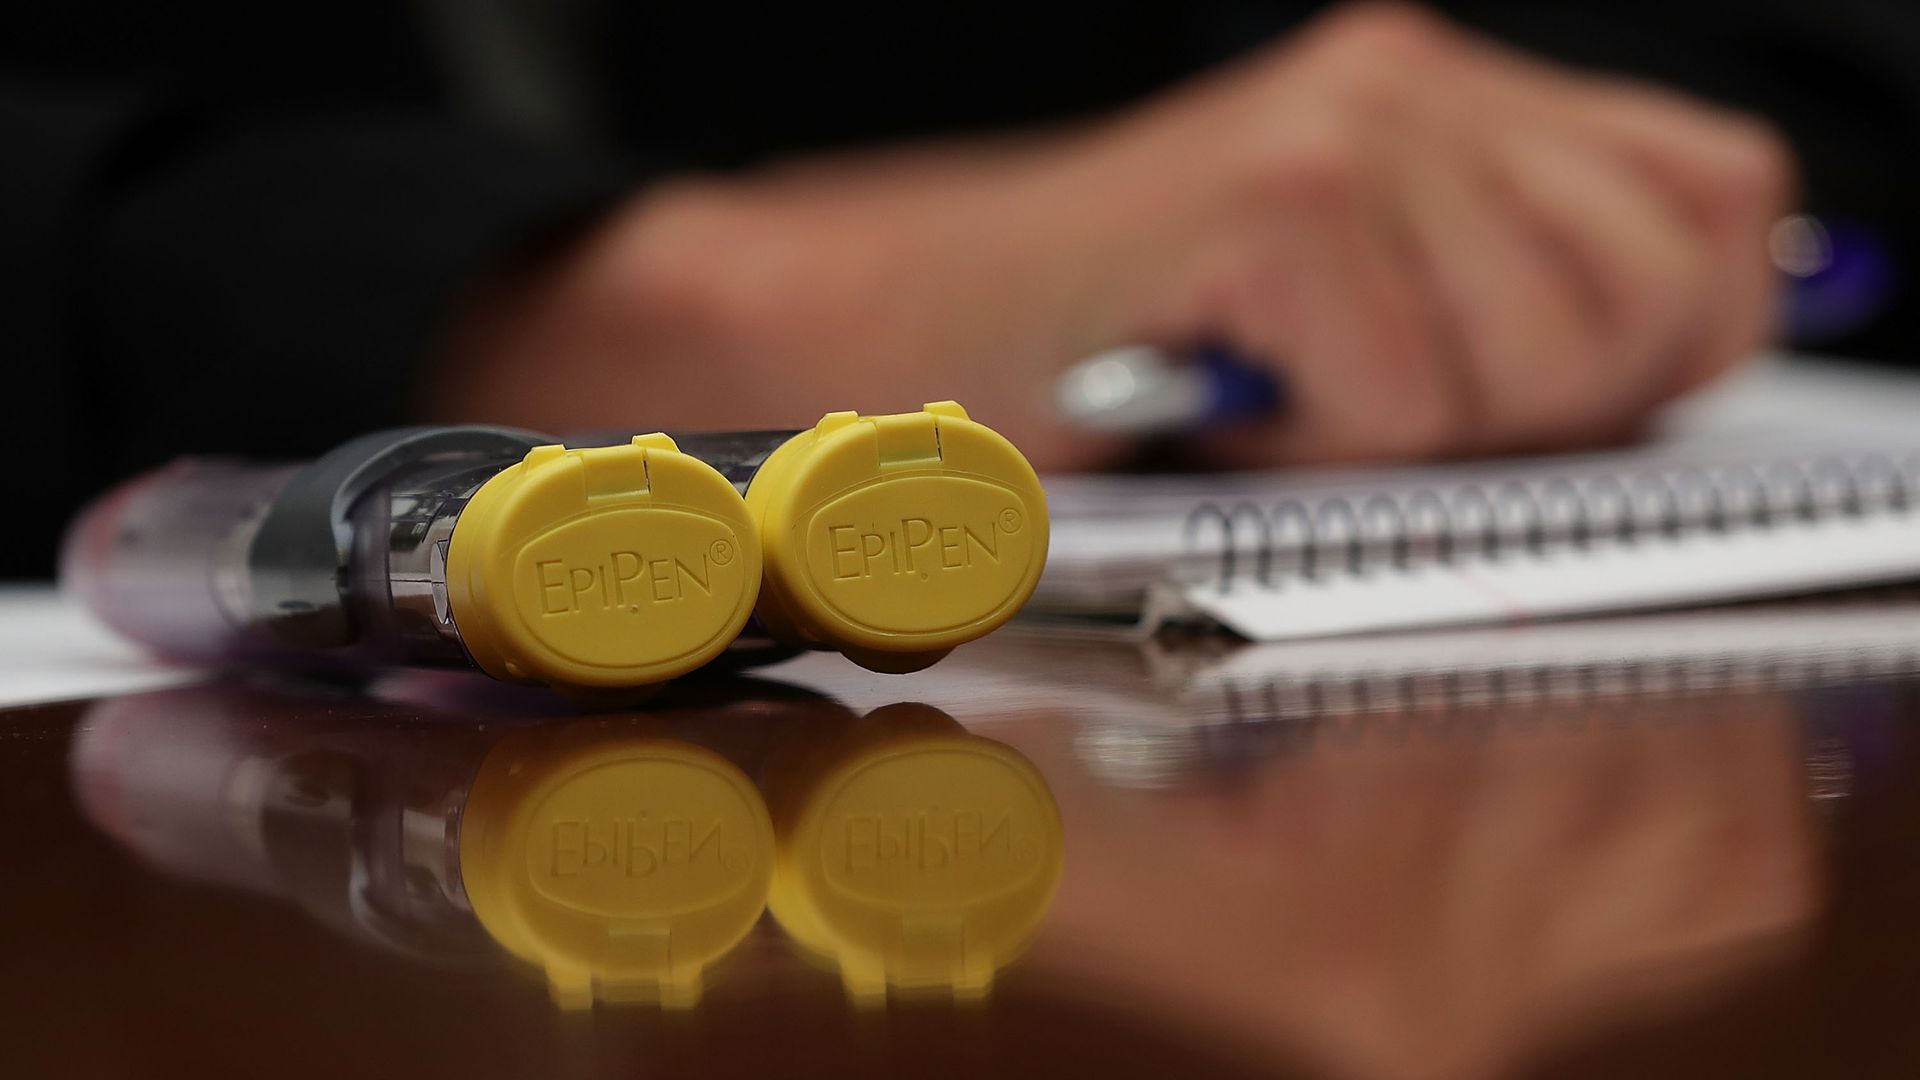 A pair of EpiPen's on a table.